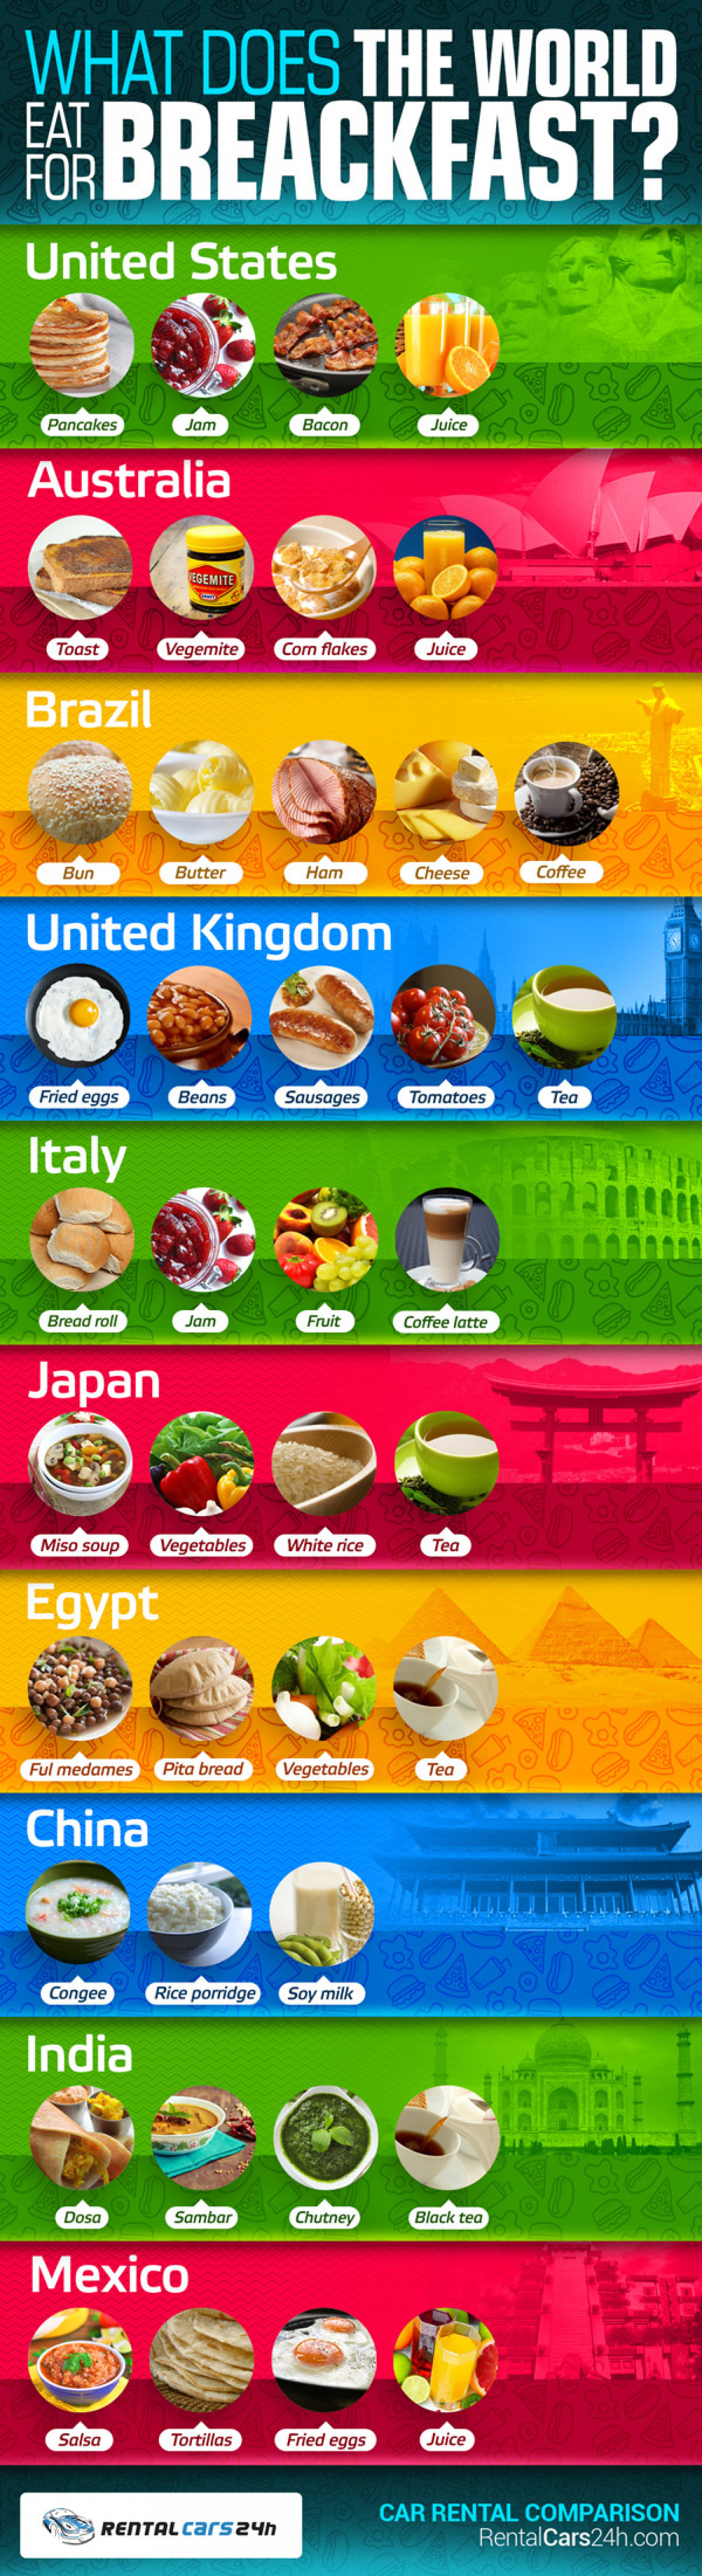 What Does The World Eat For Breakfast? Infographic